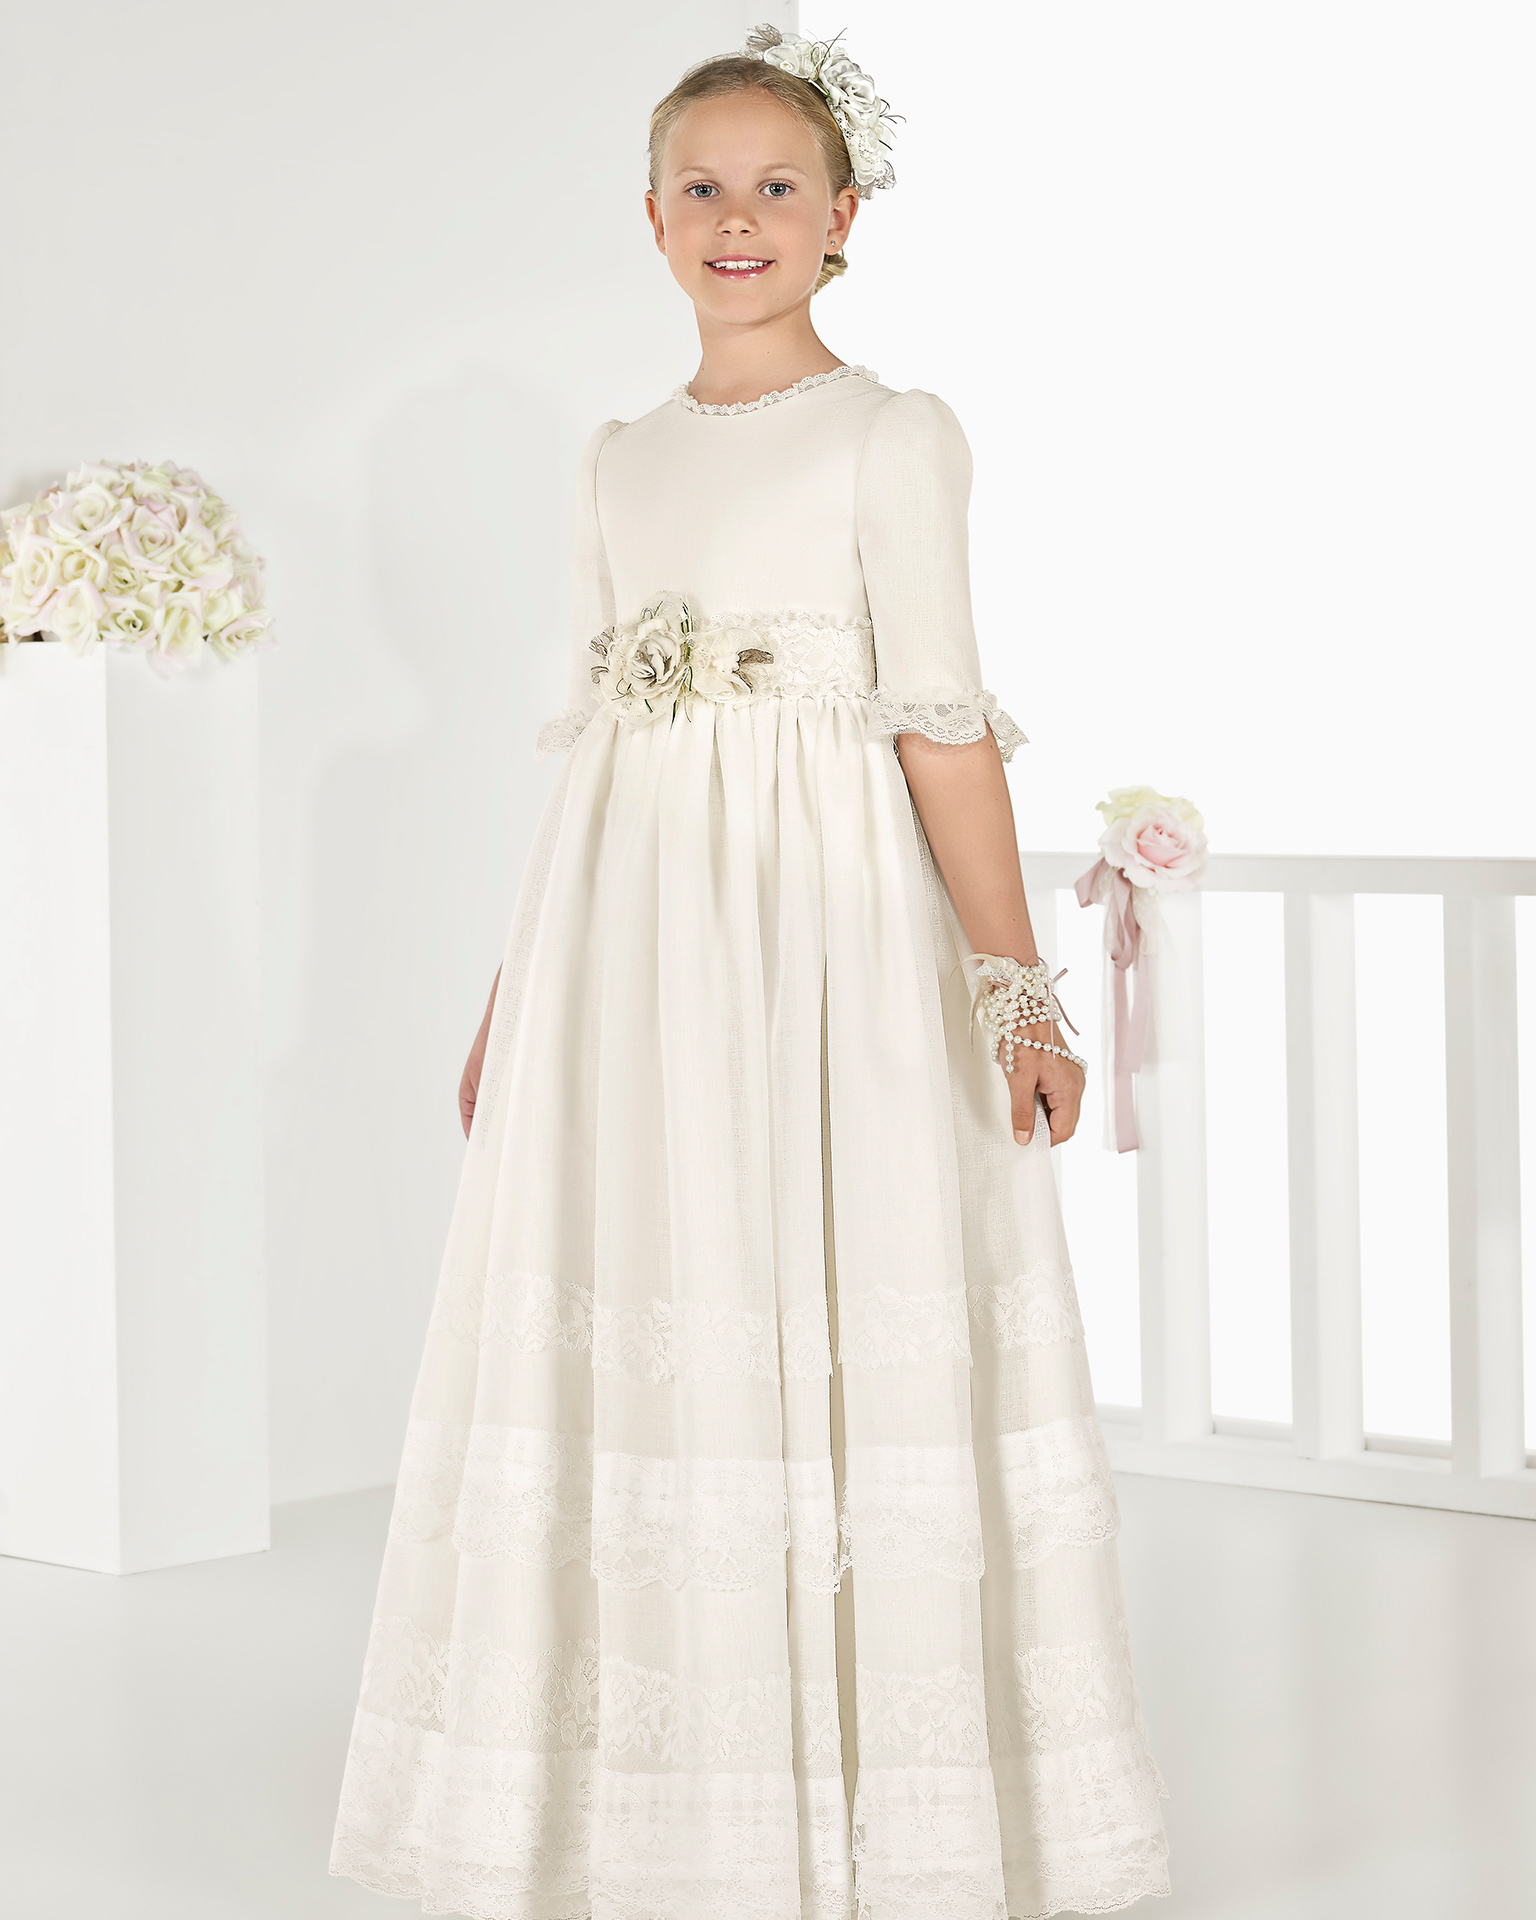 Princess-style rustic basketweave First Communion or bridesmaid's dress with empire waist, in natural. 2018 AIRE COMUNION Collection.